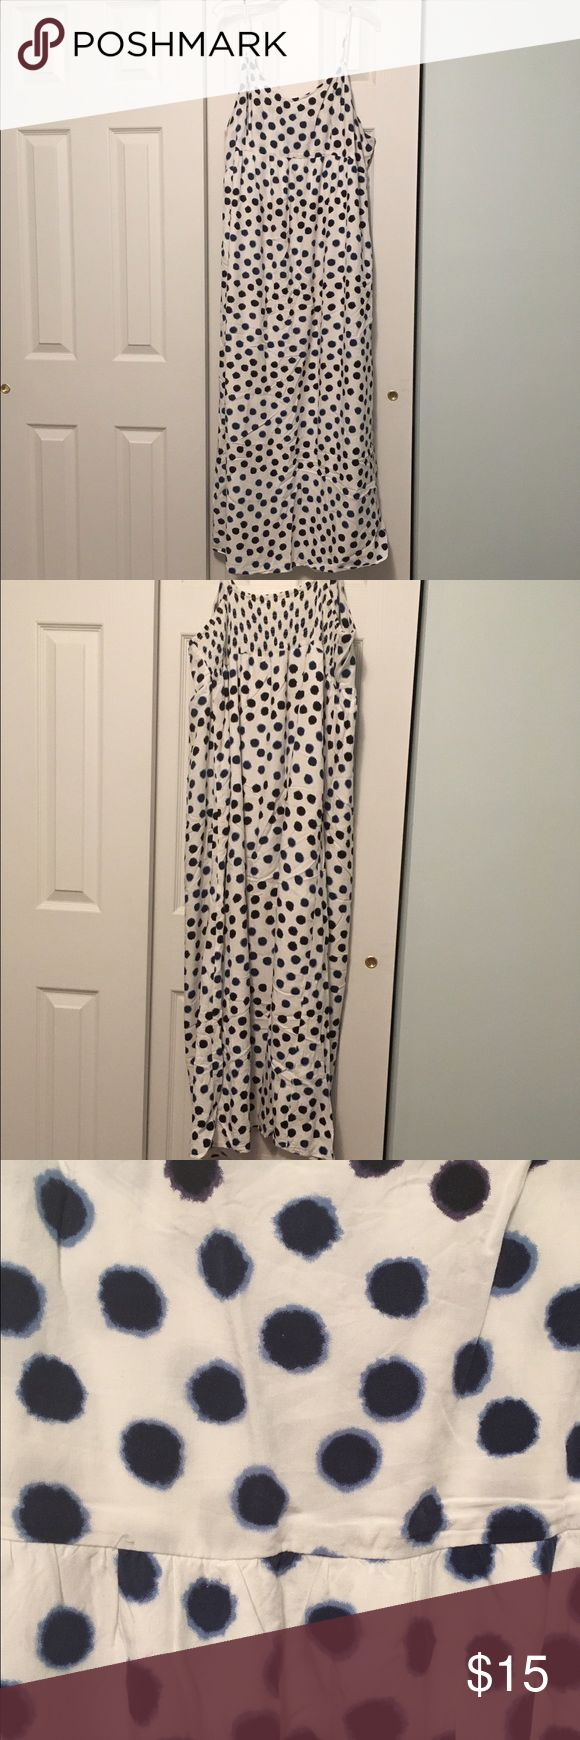 Old Navy Polka dot maxi dress size XL Old Navy polka dot maxi dress. Blue and cream colored. Pretty dress for spring and summer. Cute and comfortable. Great condition. Old Navy Dresses Maxi